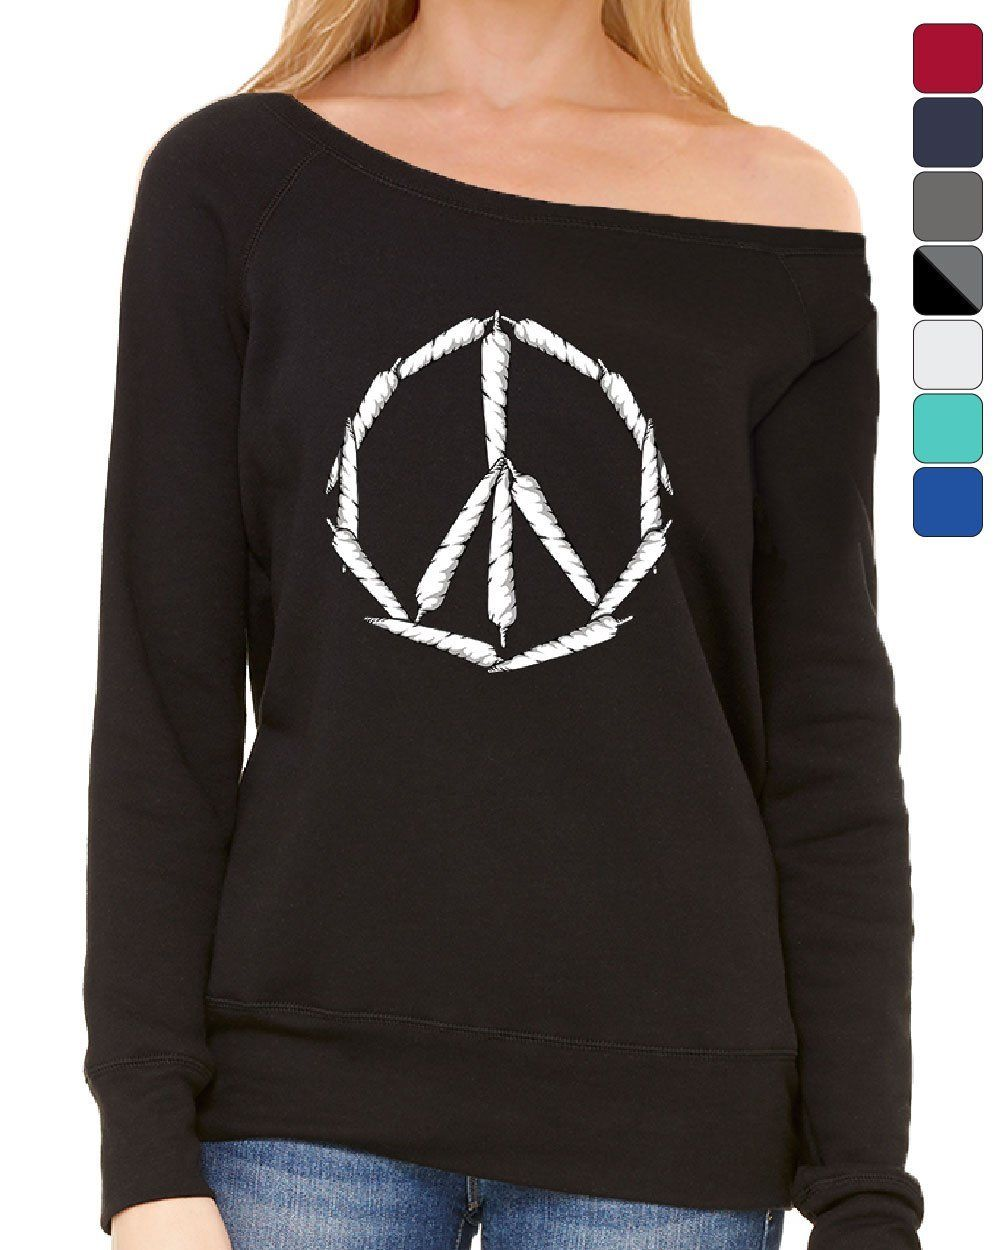 Peace Indicator Weed Joints Women's Sweatshirt Cigarette smoking 420 Hippie Pot Cannabis 1